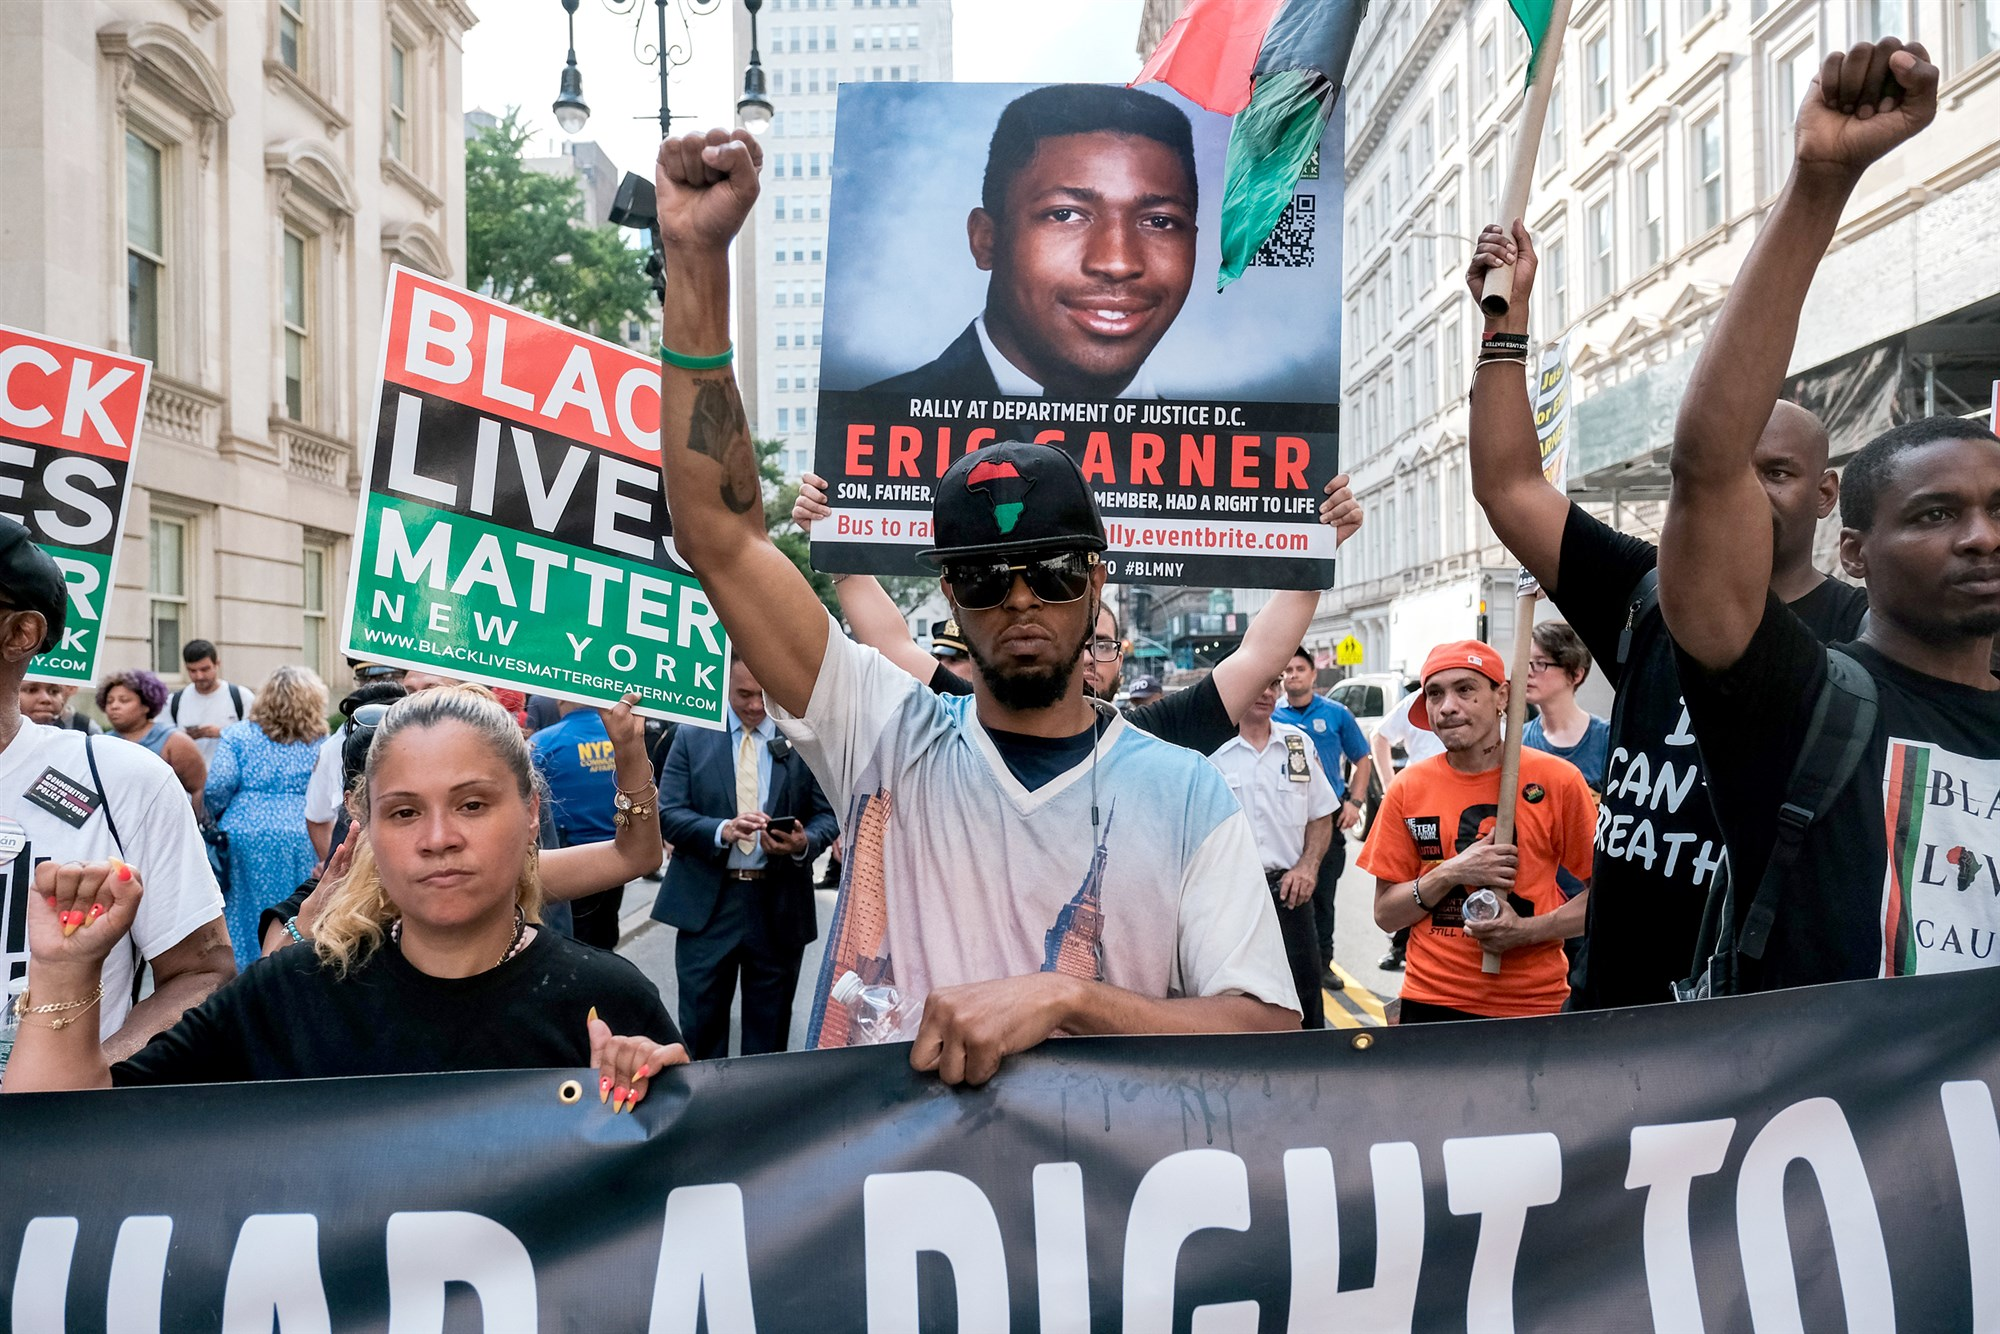 Members of Black Lives Matter protest on the fifth anniversary of the death of Eric Garner, a day after federal prosecutors announced their decision not to prosecute NYPD Officer Daniel Pantaleo or other officers on charges related to his death, in New York on July 17, 2019.